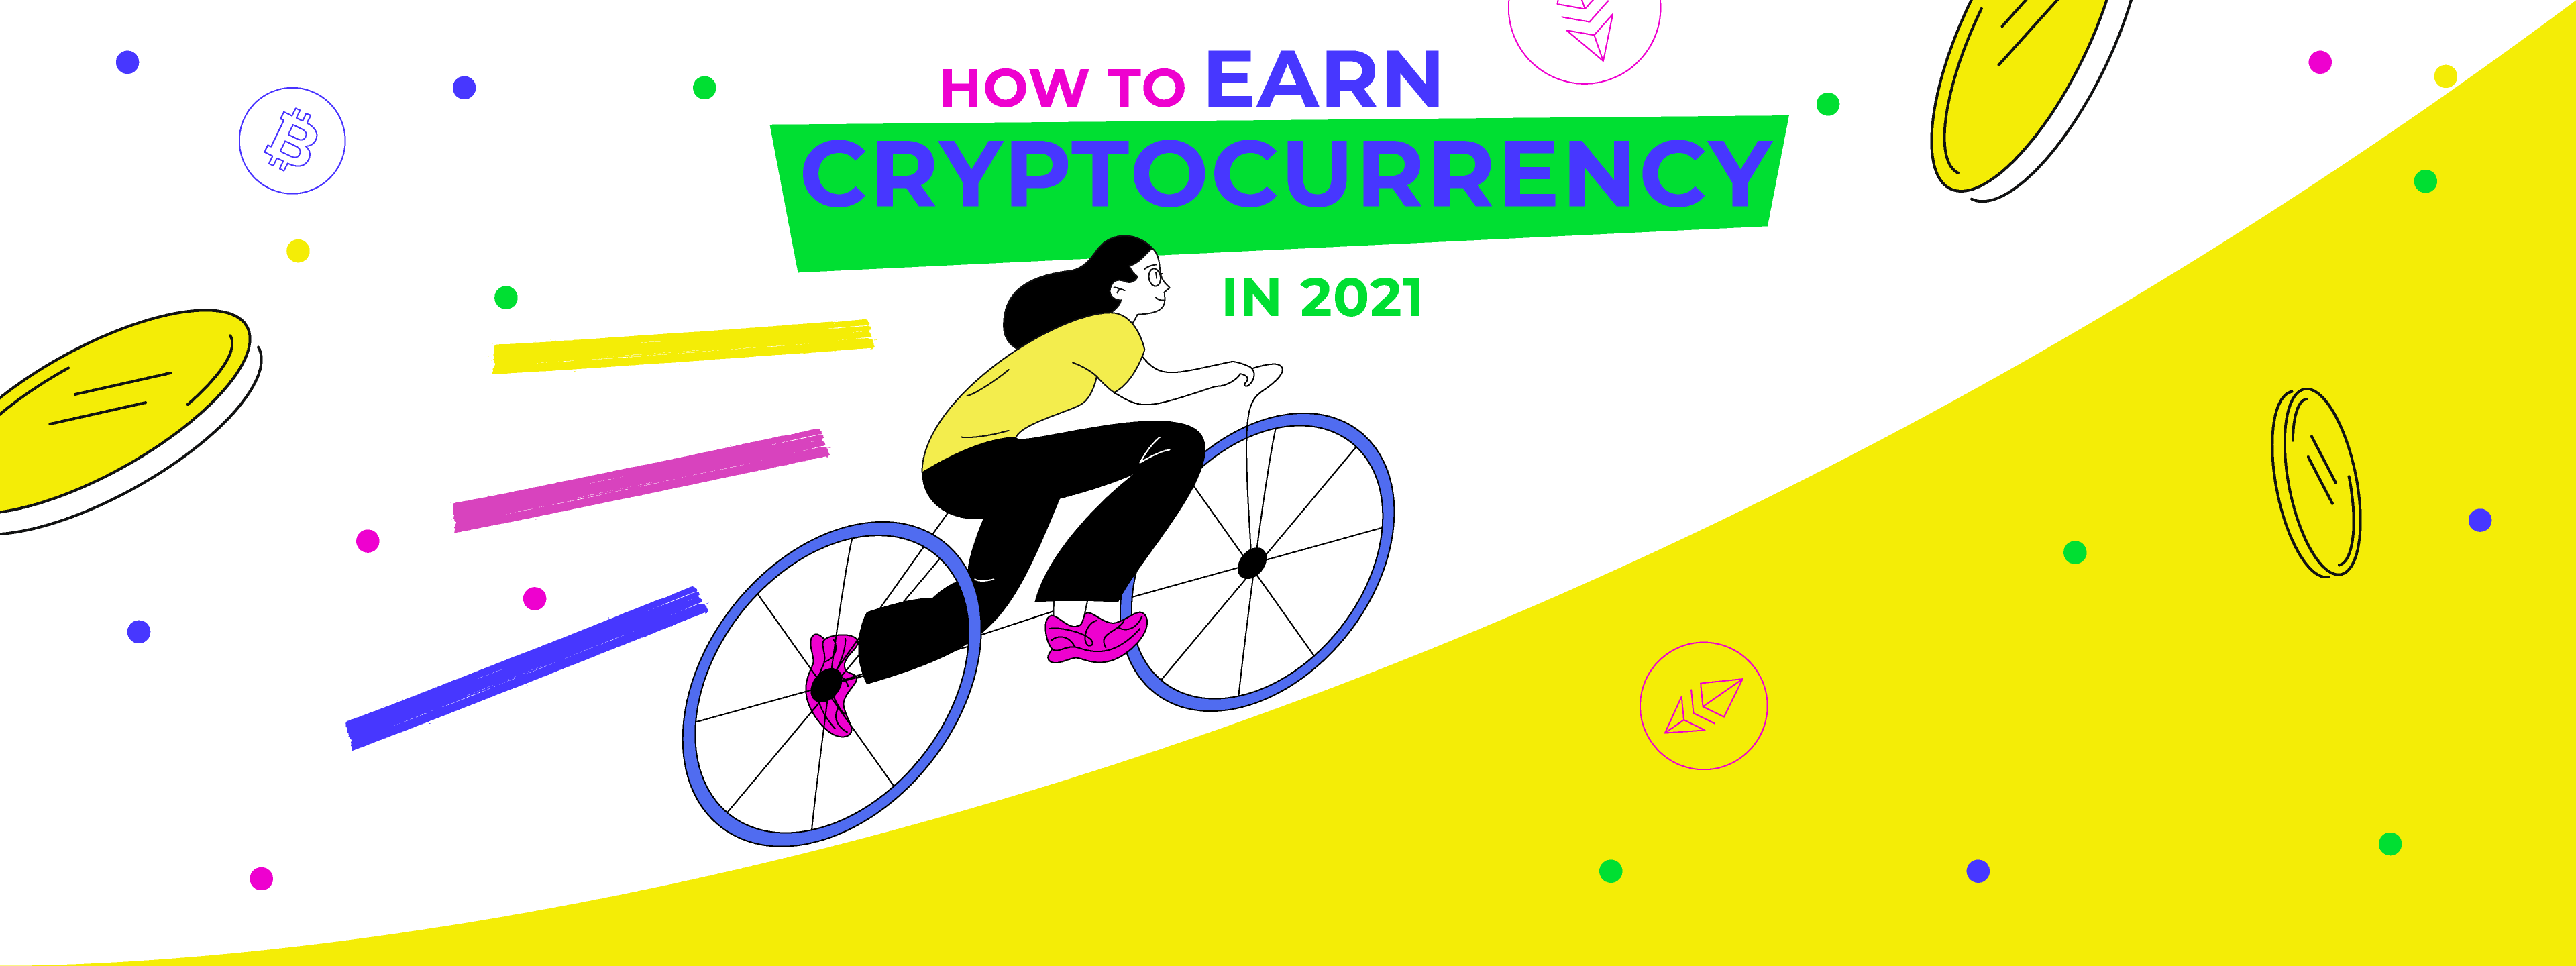 Top 10 Ways to Earn Crypto in 2021